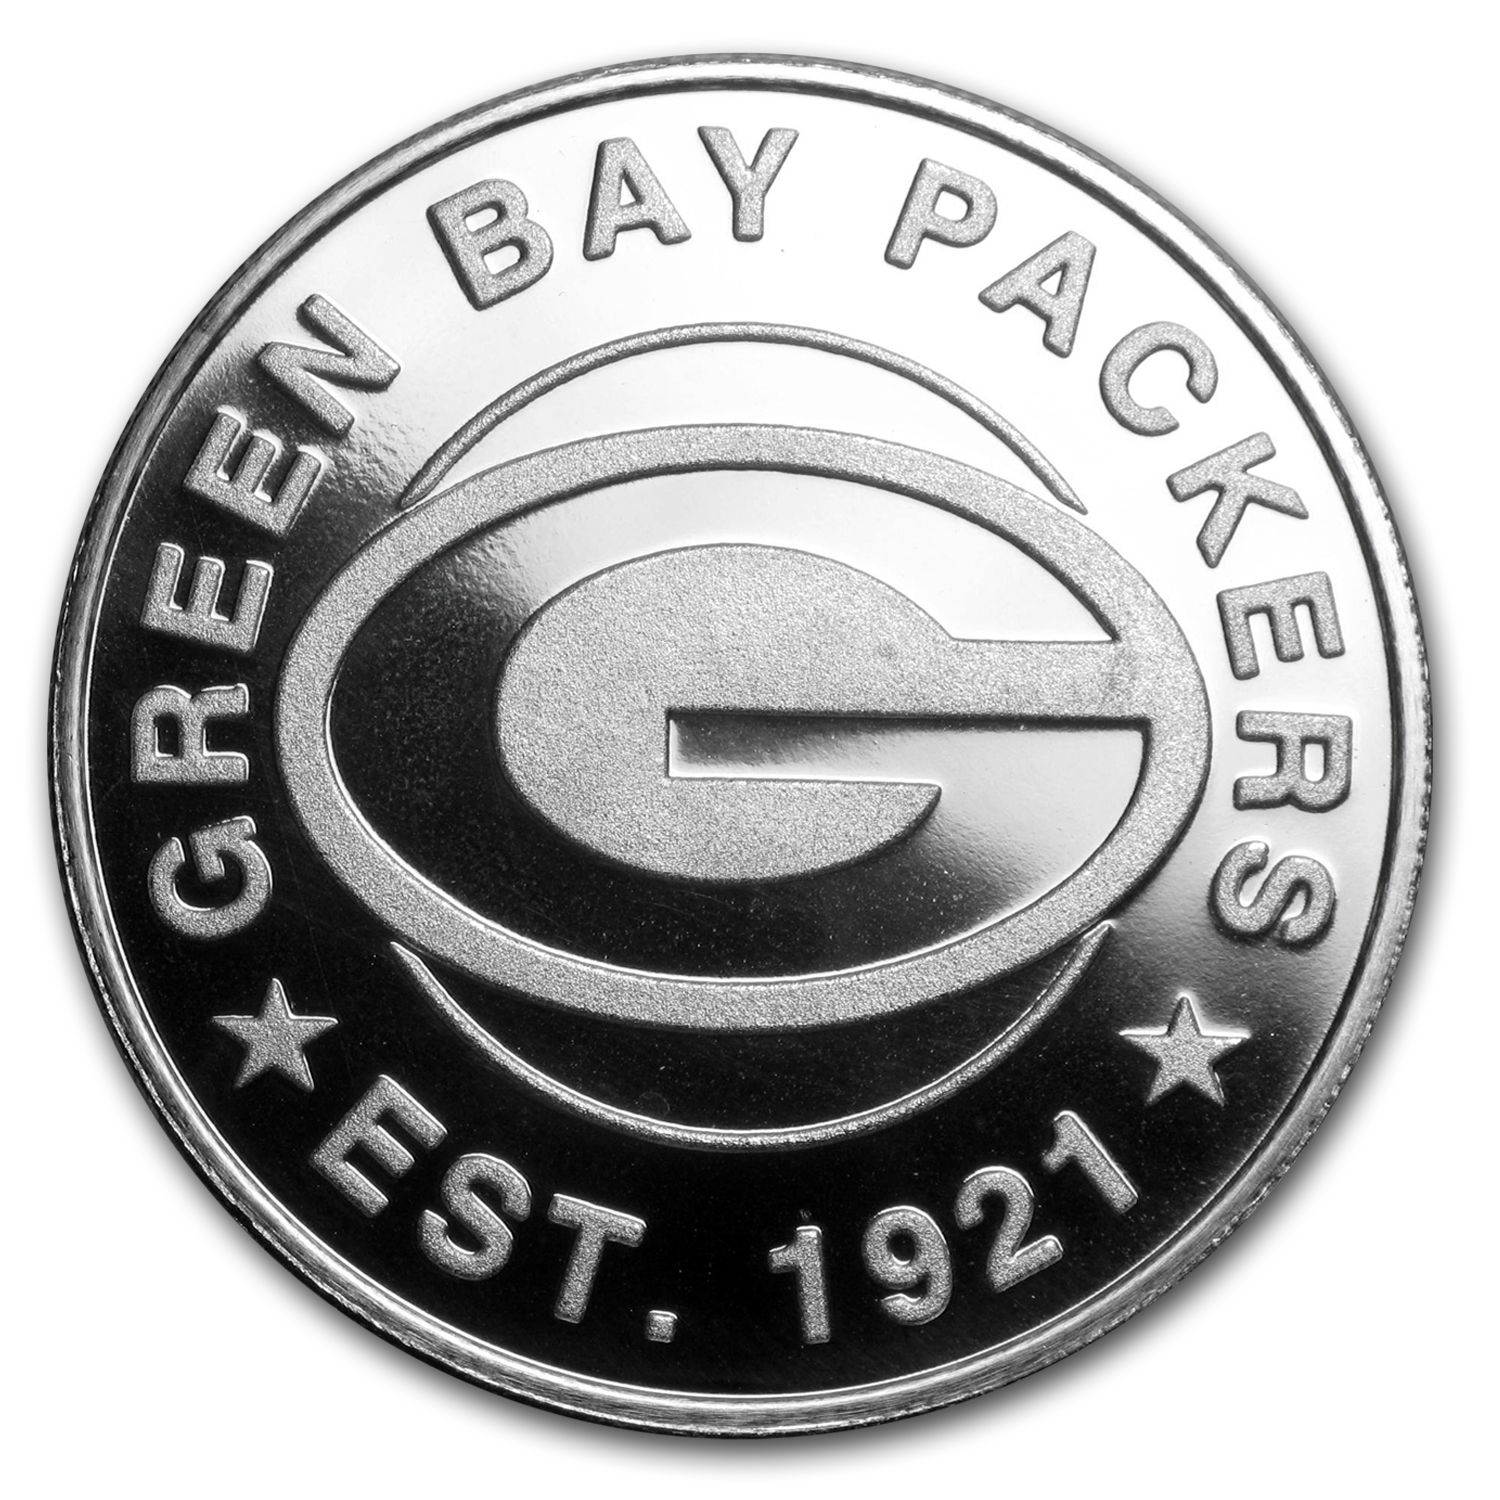 1 oz Silver Round - Green Bay Packers